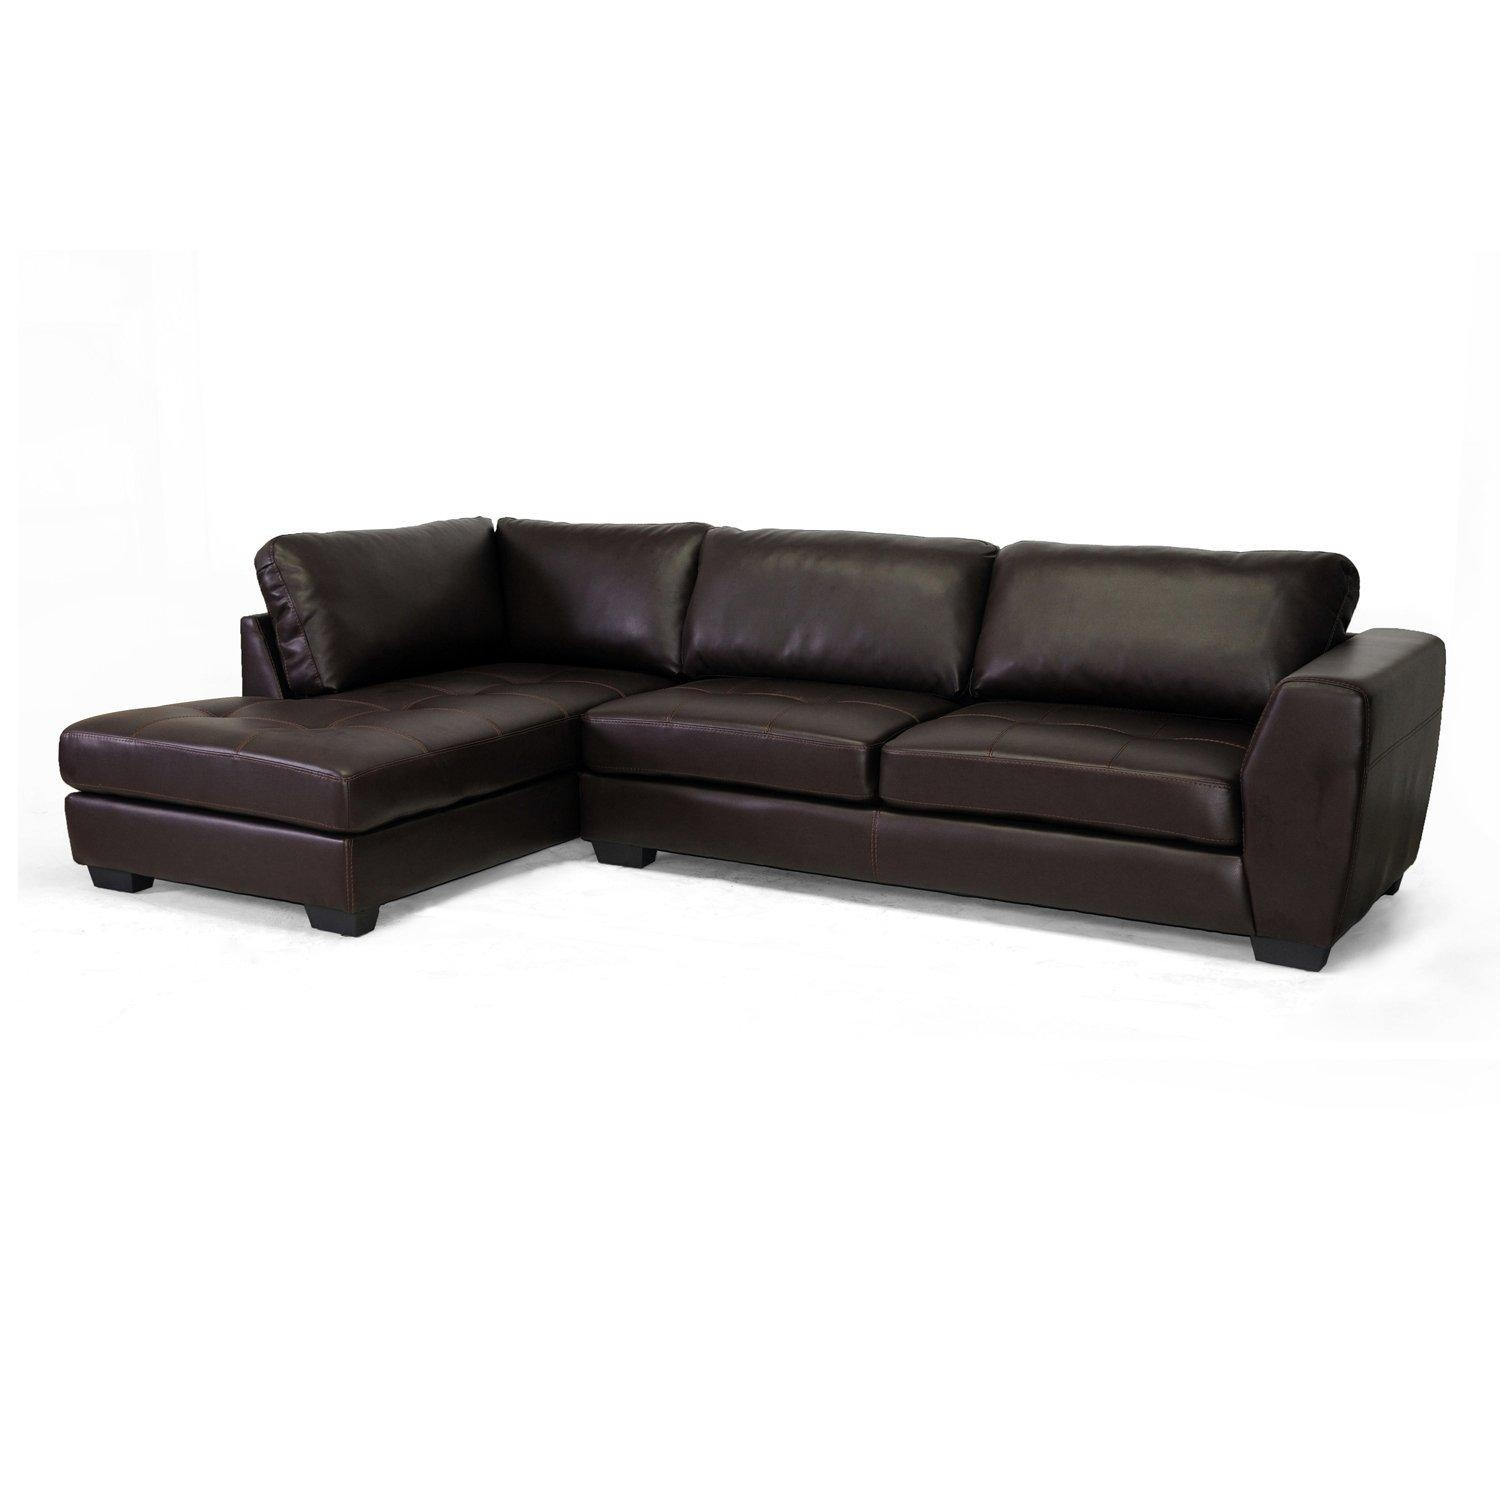 Furniture: Baxton Studio Sectional | Braxton Sectional Sofa With Regard To Braxton Sectional Sofa (Image 14 of 15)